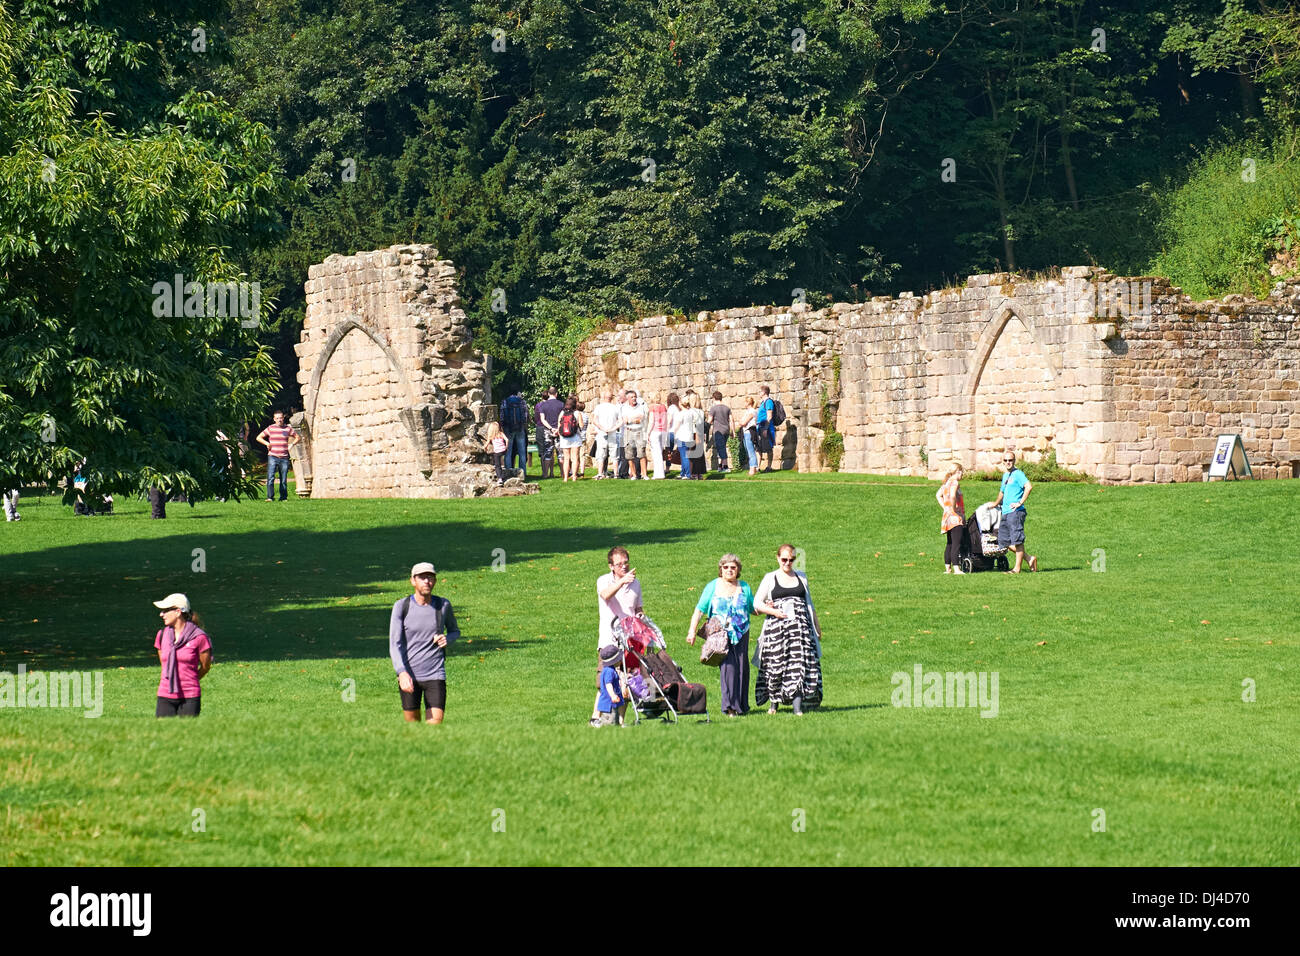 Exterior views of the Cistercian Monastery Fountains Abbey North Yorkshire England. Stock Photo